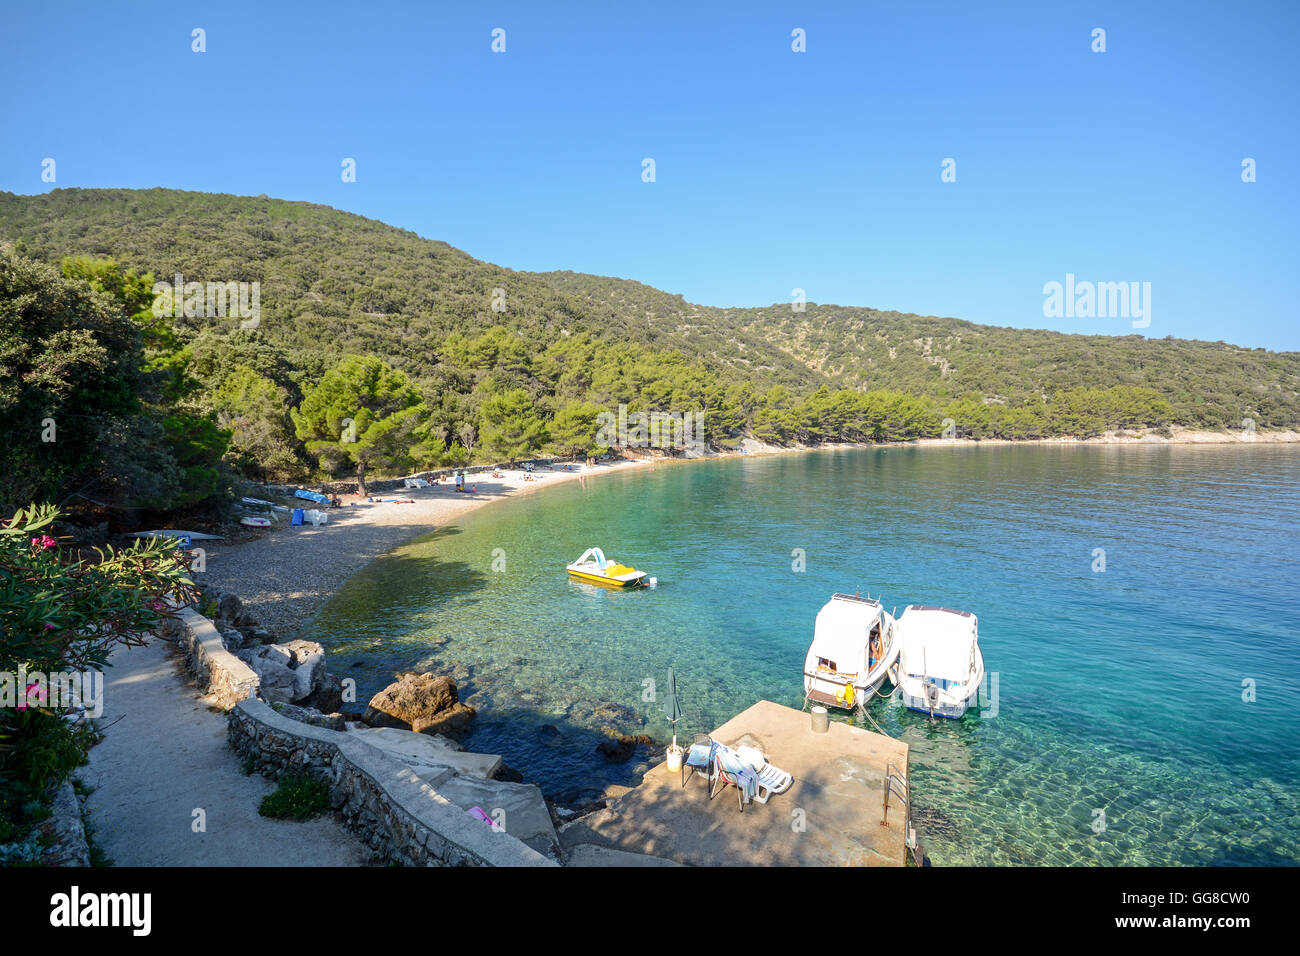 Cres Island: View to beach near Valun village, Istrian coast on the Adriatic sea, Croatia Europe Stock Photo